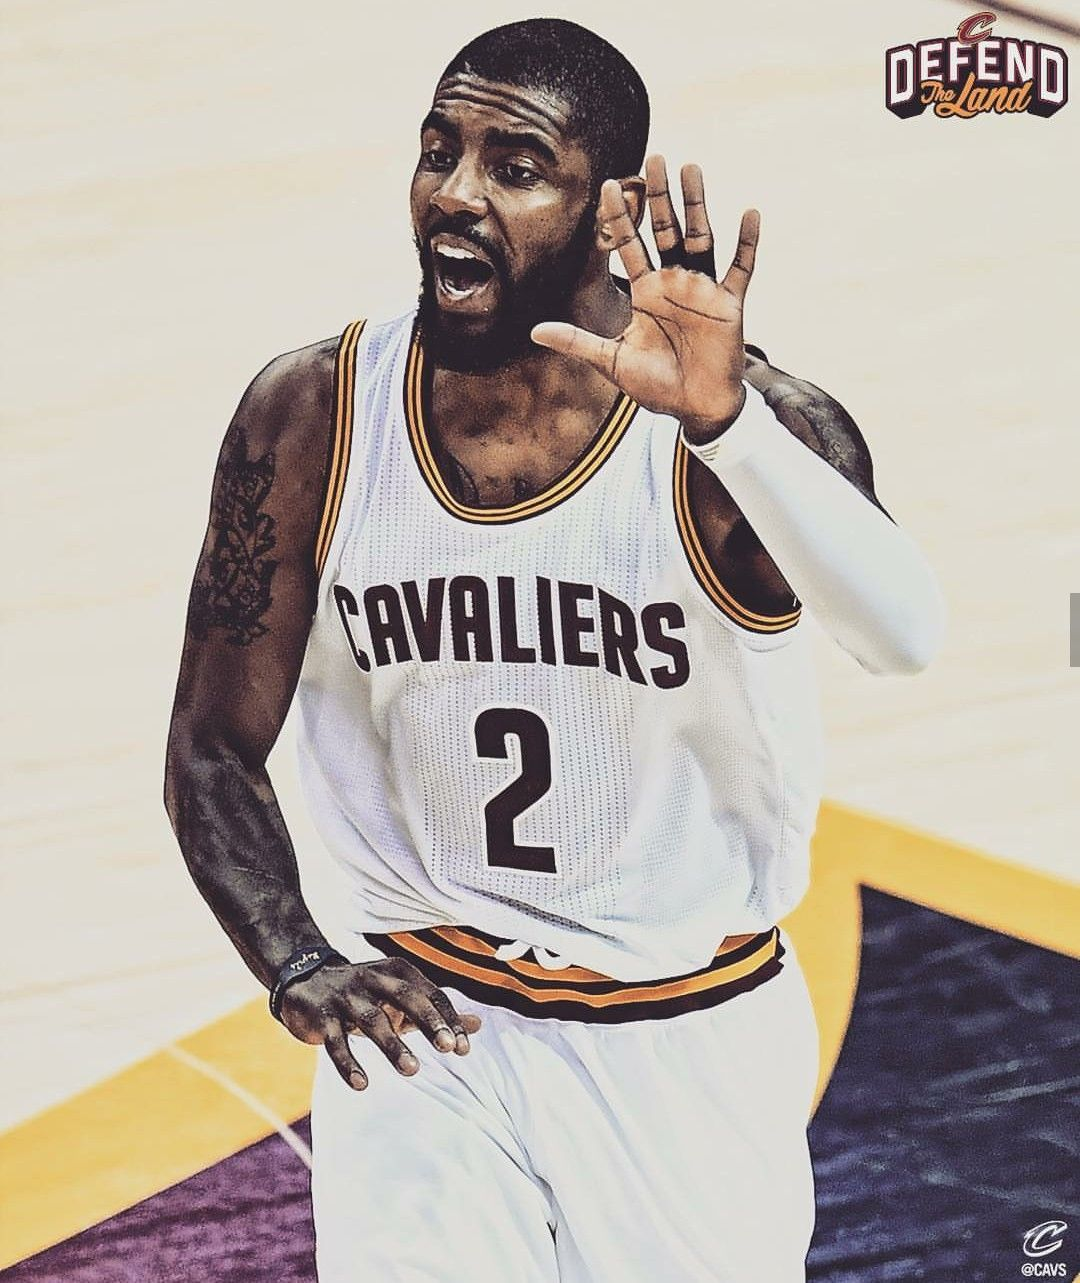 Kyrie Irving (With images) Lebron james kyrie irving